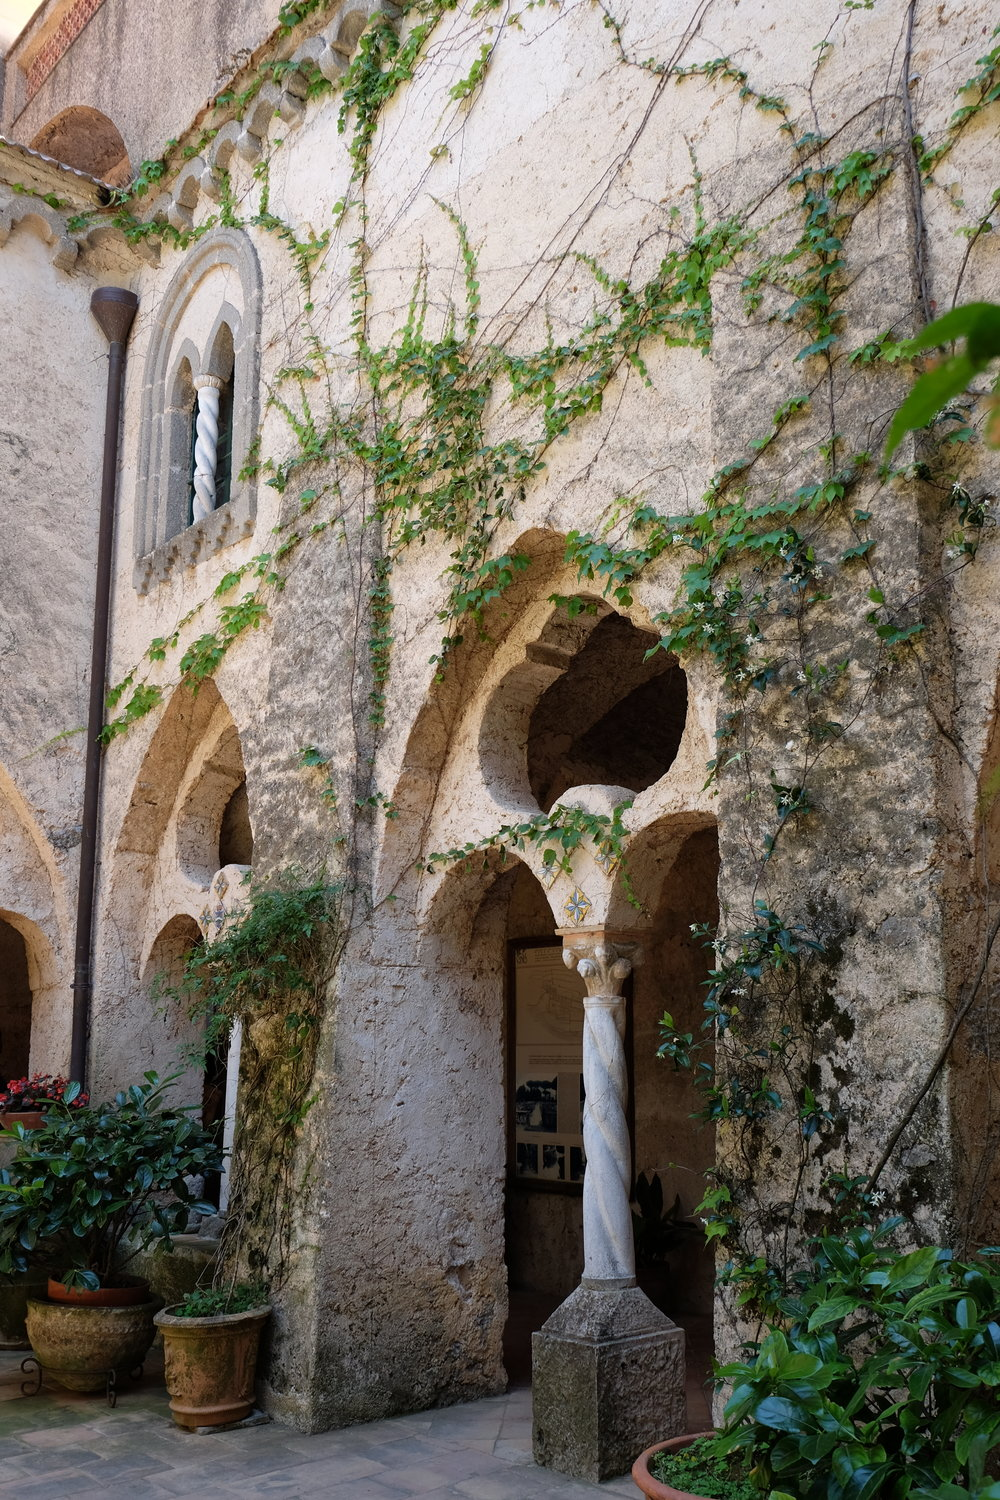 The romantic cloister.